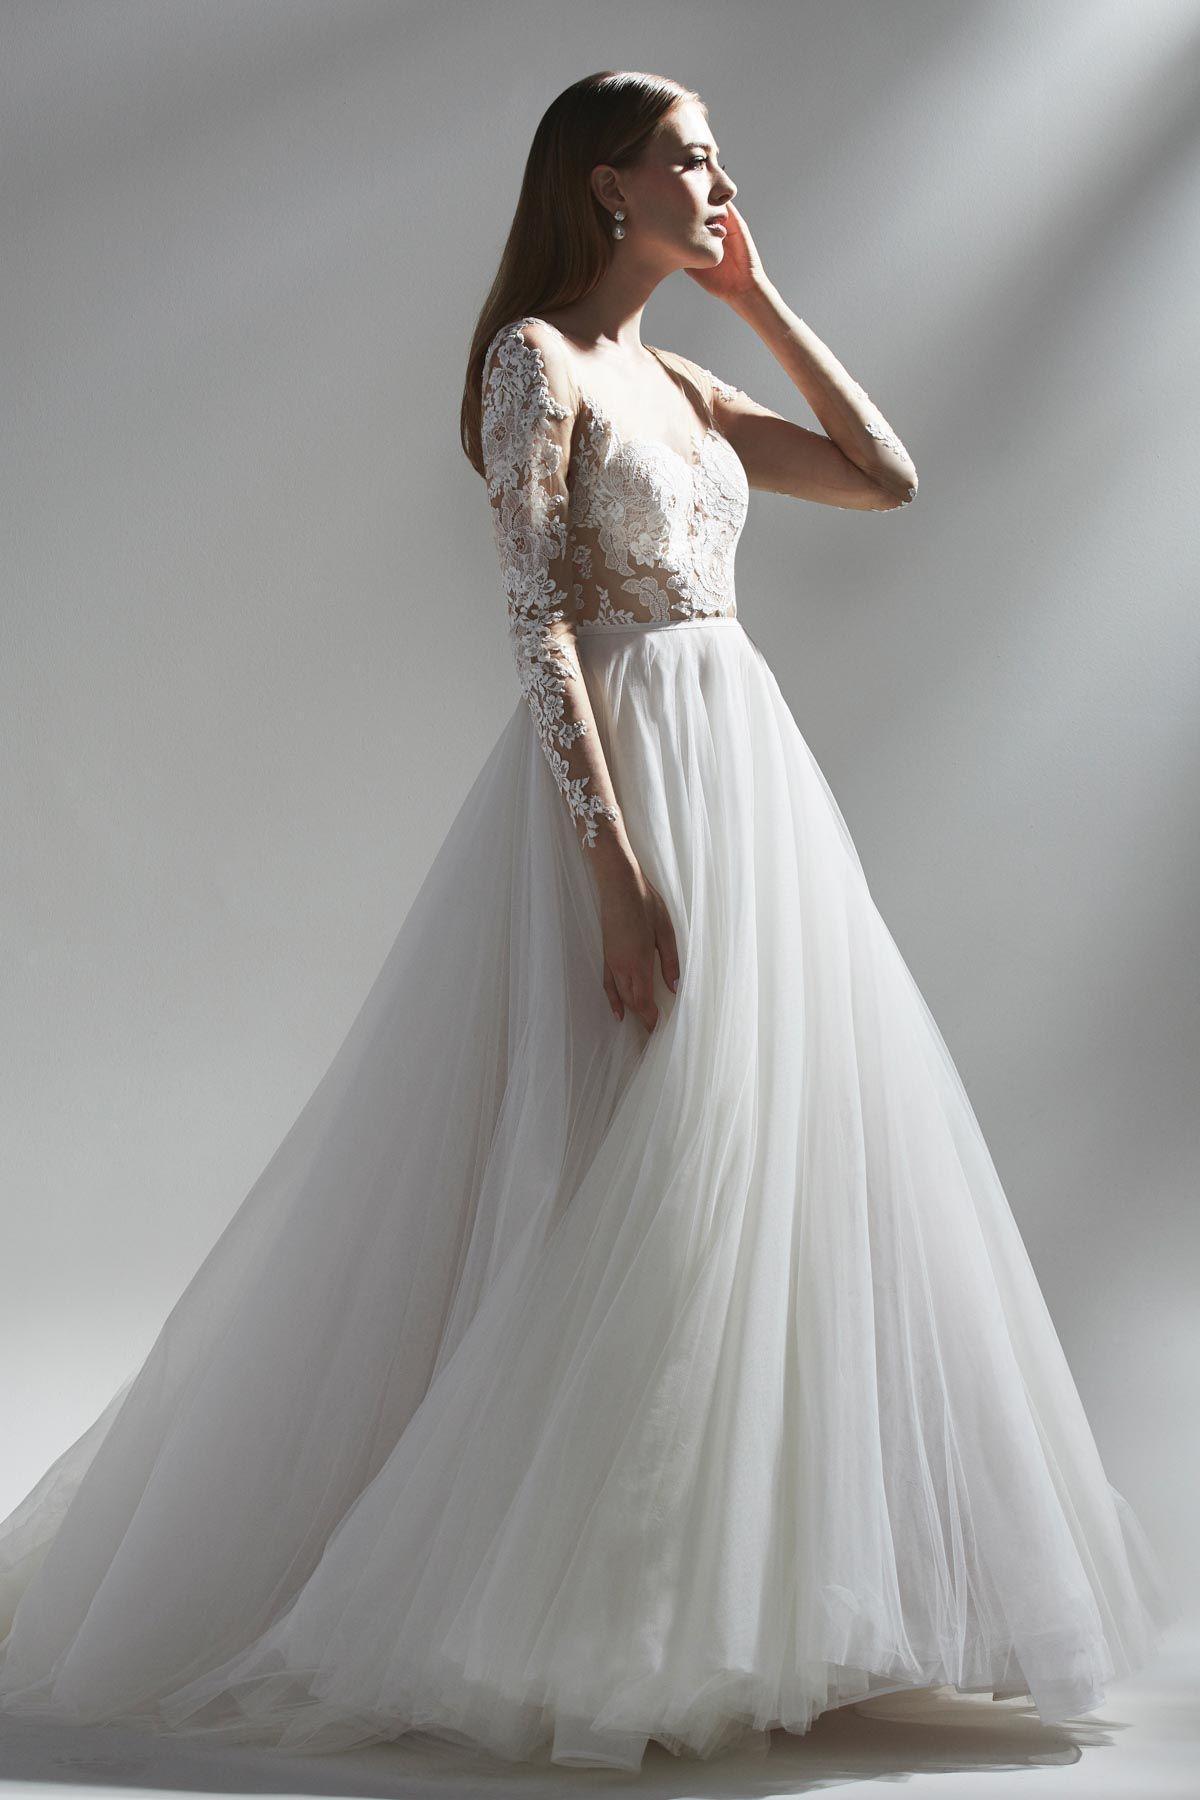 Amaya By Watters 2019 Watters Collection The Sun Was Shining On The Sea Collection Our Classic By Design Organza And Tulle Gown Is Totally Contemporary In